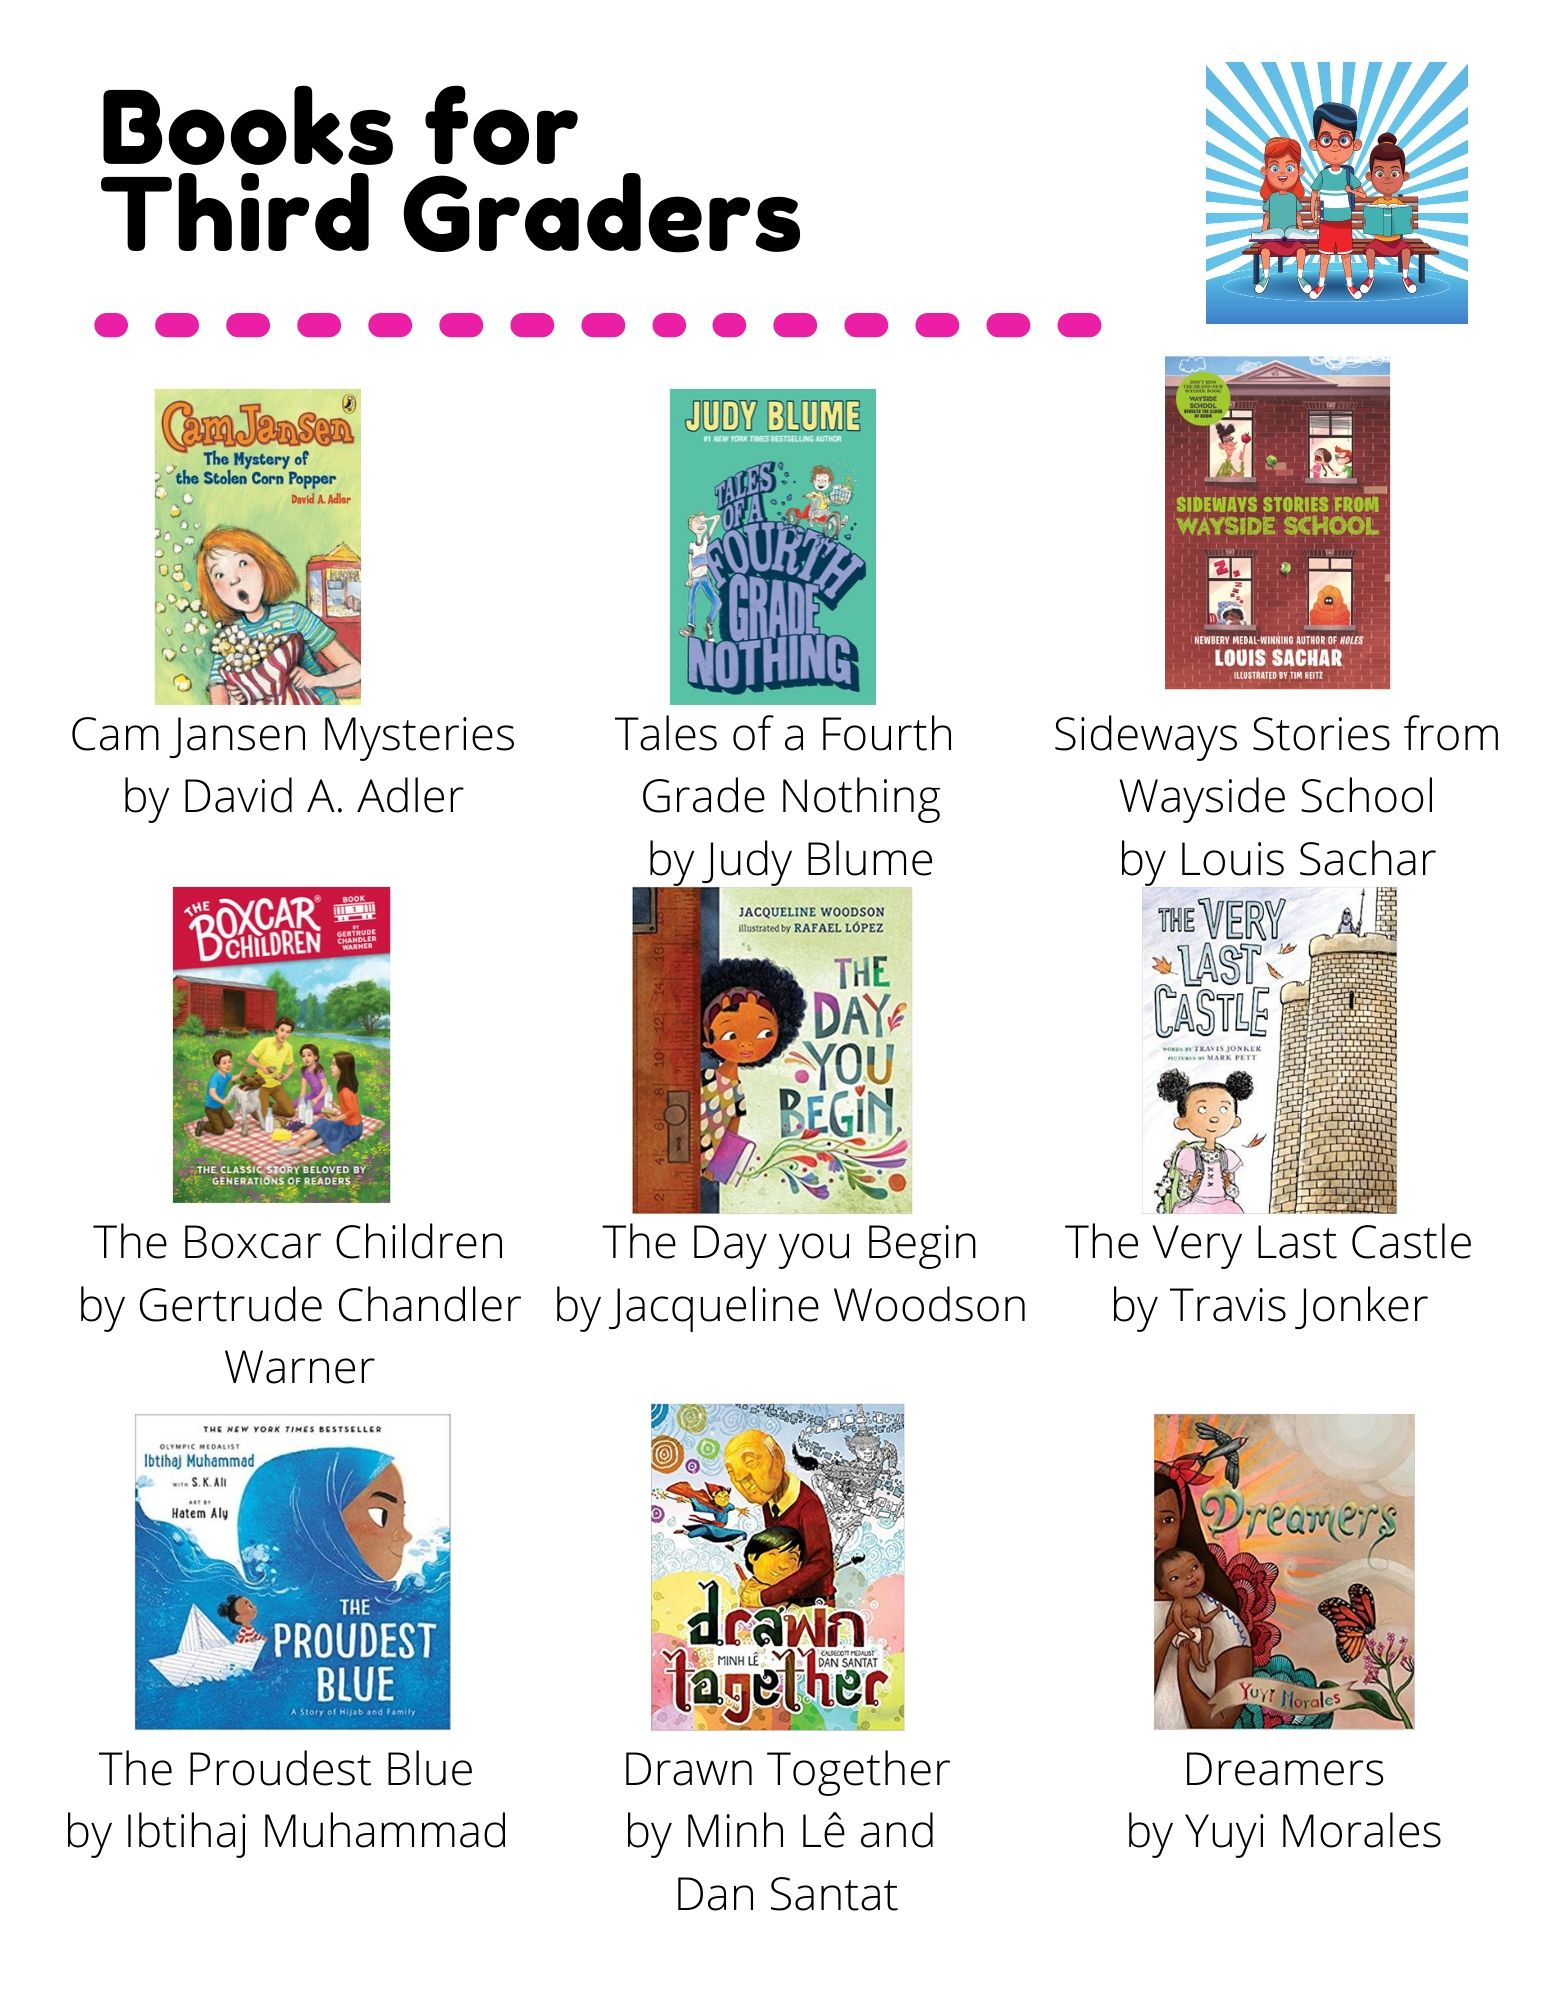 Books for Third Graders: Cam Jansen Mysteries by David A. Adler. Tales of a Fourth  Grade Nothing by Judy Blume. Sideways Stories from Wayside School by Louis Sachar. The Boxcar Children by Gertrude Chandler Warner. The Day you Begin by Jacqueline Woodson. The Very Last Castle by Travis Jonker. The Proudest Blue by Ibtihaj Muhammad. Drawn Together by Minh Lê and  Dan Santat. Dreamers by Yuyi Morales. The Next President by Kate Messner. The Unicorn  Rescue Society by Adam Gidwitz. The Last Kids on Earth by Max Brallier. Sparks! by Ian Boothby and  Nina Matsumoto. Abe Lincoln  Crosses the Creek by Deborah Hopkinson. The Wild Robot by Peter Brown. Babymouse by Jennifer Holm. Drum Dream Girl by Margarita Engle. The Spiderwick Chronicles by Tony DiTerlizzi. Dog Diaries by Kate Klimo. I Survived the Children's Blizzard, 1888 by Lauren Tarshis. Hug a Tree, Geronimo by Geronimo Stilton.